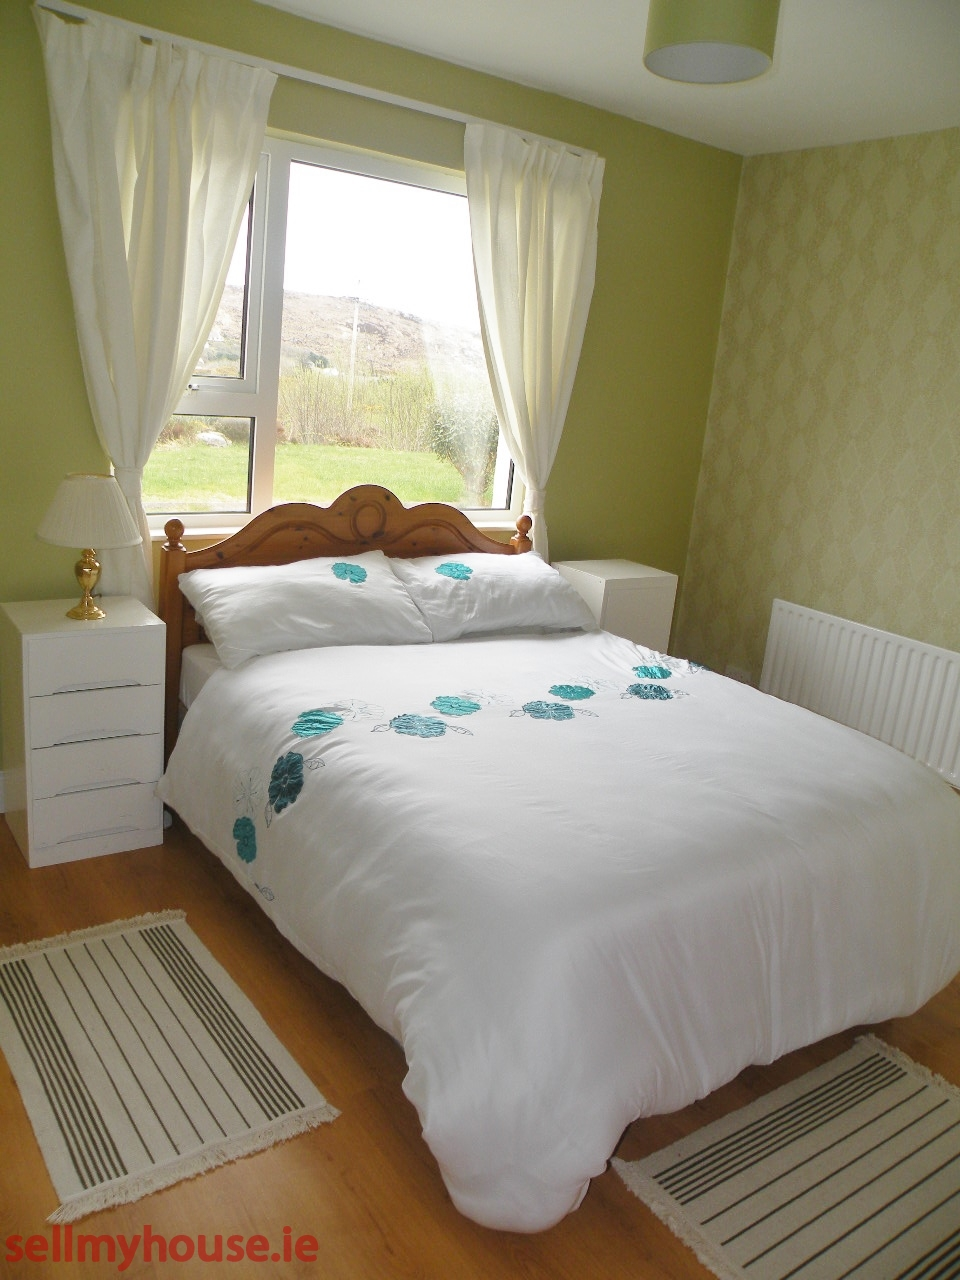 Coastal Properties For Sale In Donegal